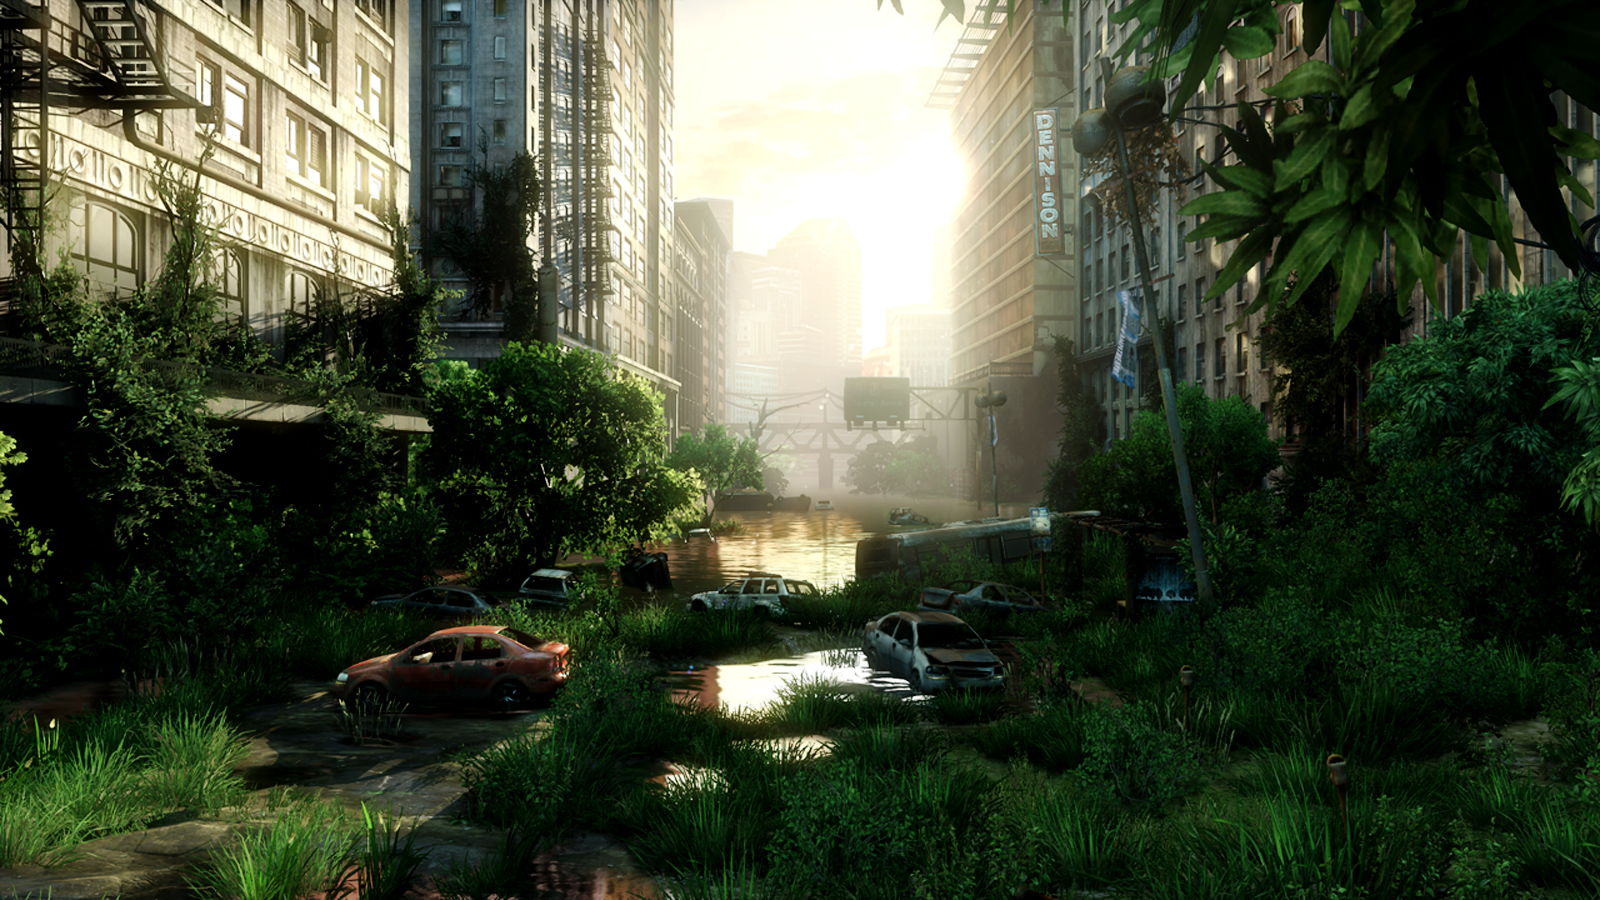 hd wallpaper download the last of us game hd wallpapers